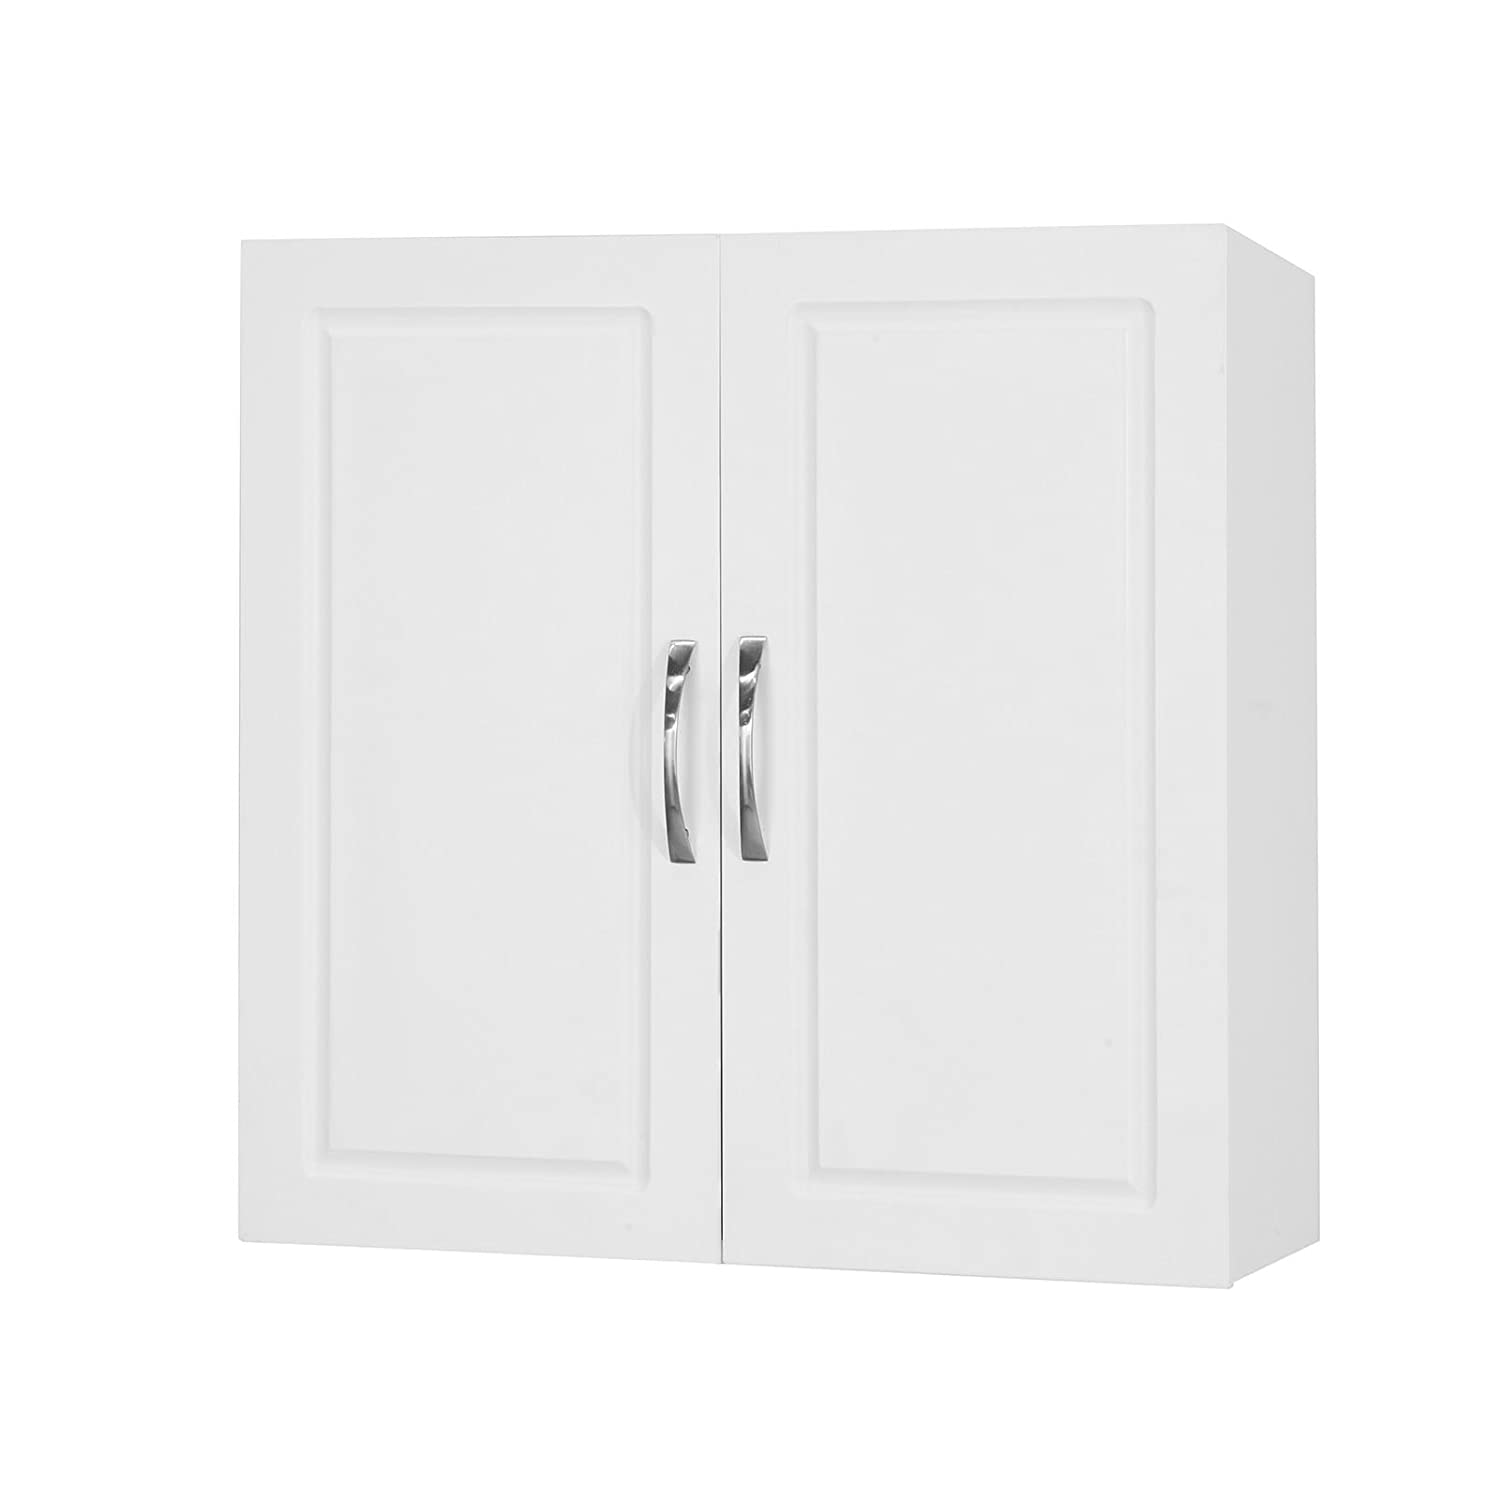 SoBuy FRG231-W, White Kitchen Bathroom Wall Cabinet Wall Storage Cabinet Unit with Double Doors, 60x30x60cm